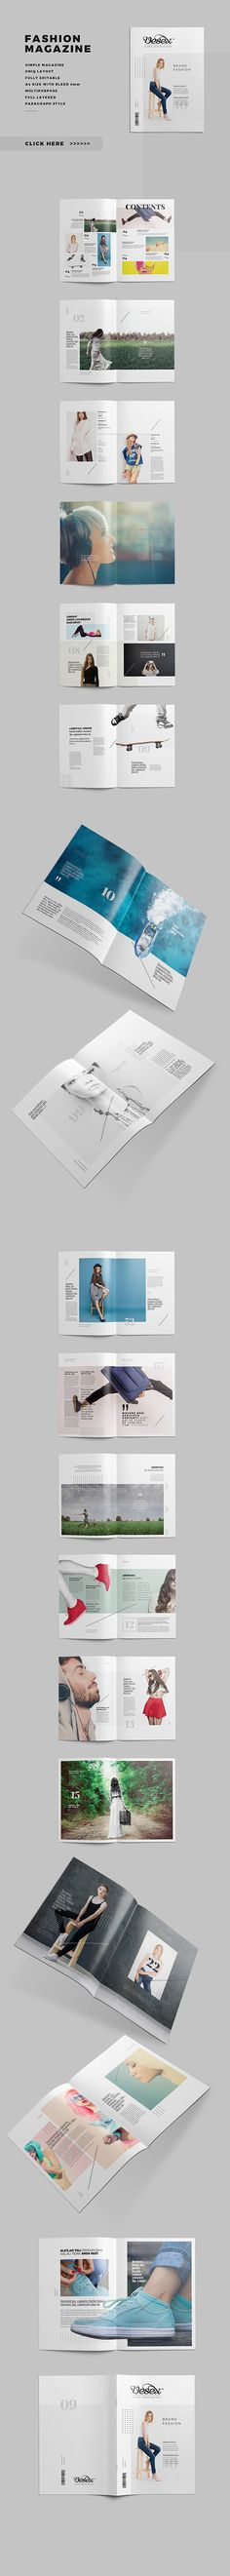 Fashion TriFold Brochure Template Psd  Brochure